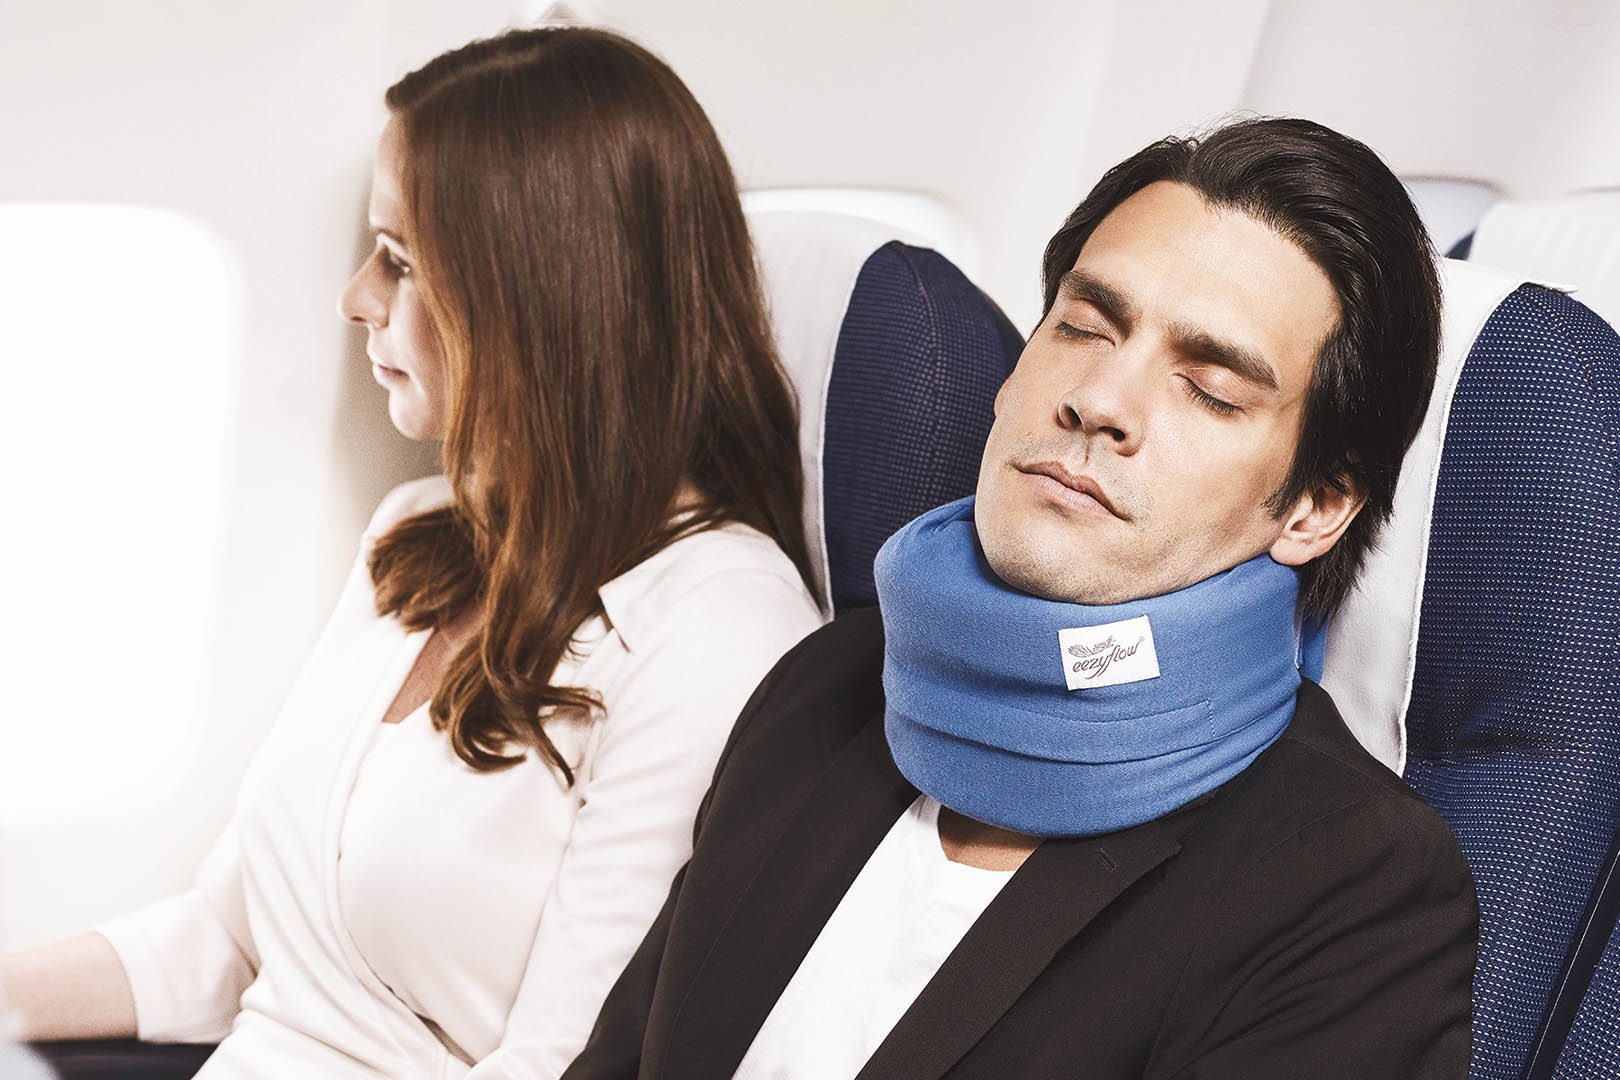 Eezyflow sleep collar, Unique Swedish innovation helps social snorers, Plane couple, Scan Magazine, August 2019